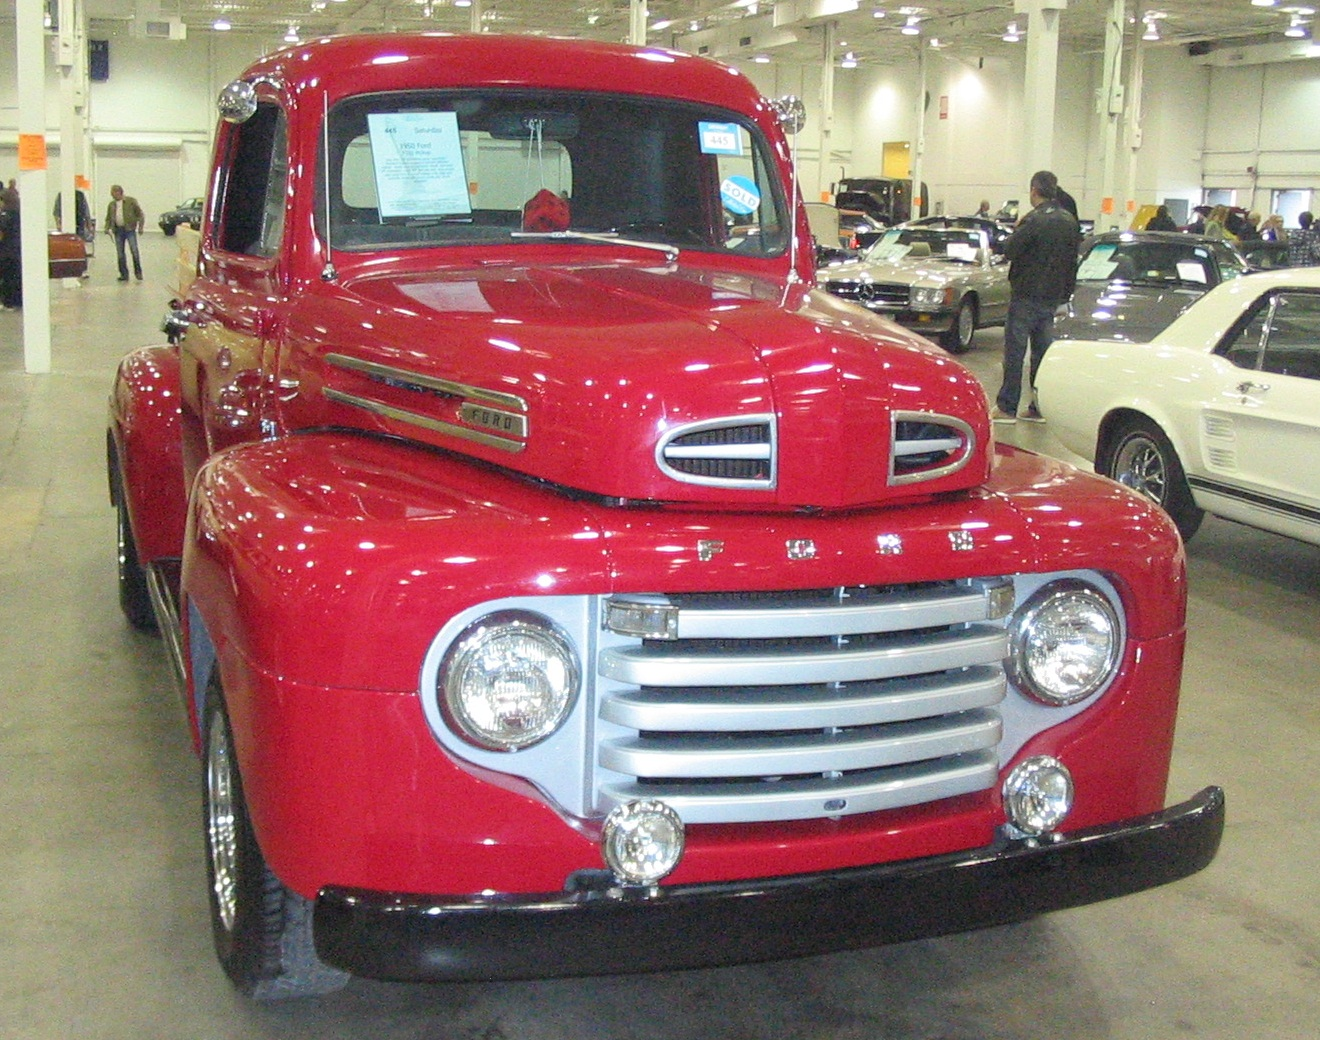 Ford And Ford Auction >> File:'50 Ford F-Series (Toronto Spring '12 Classic Car Auction).JPG - Wikimedia Commons